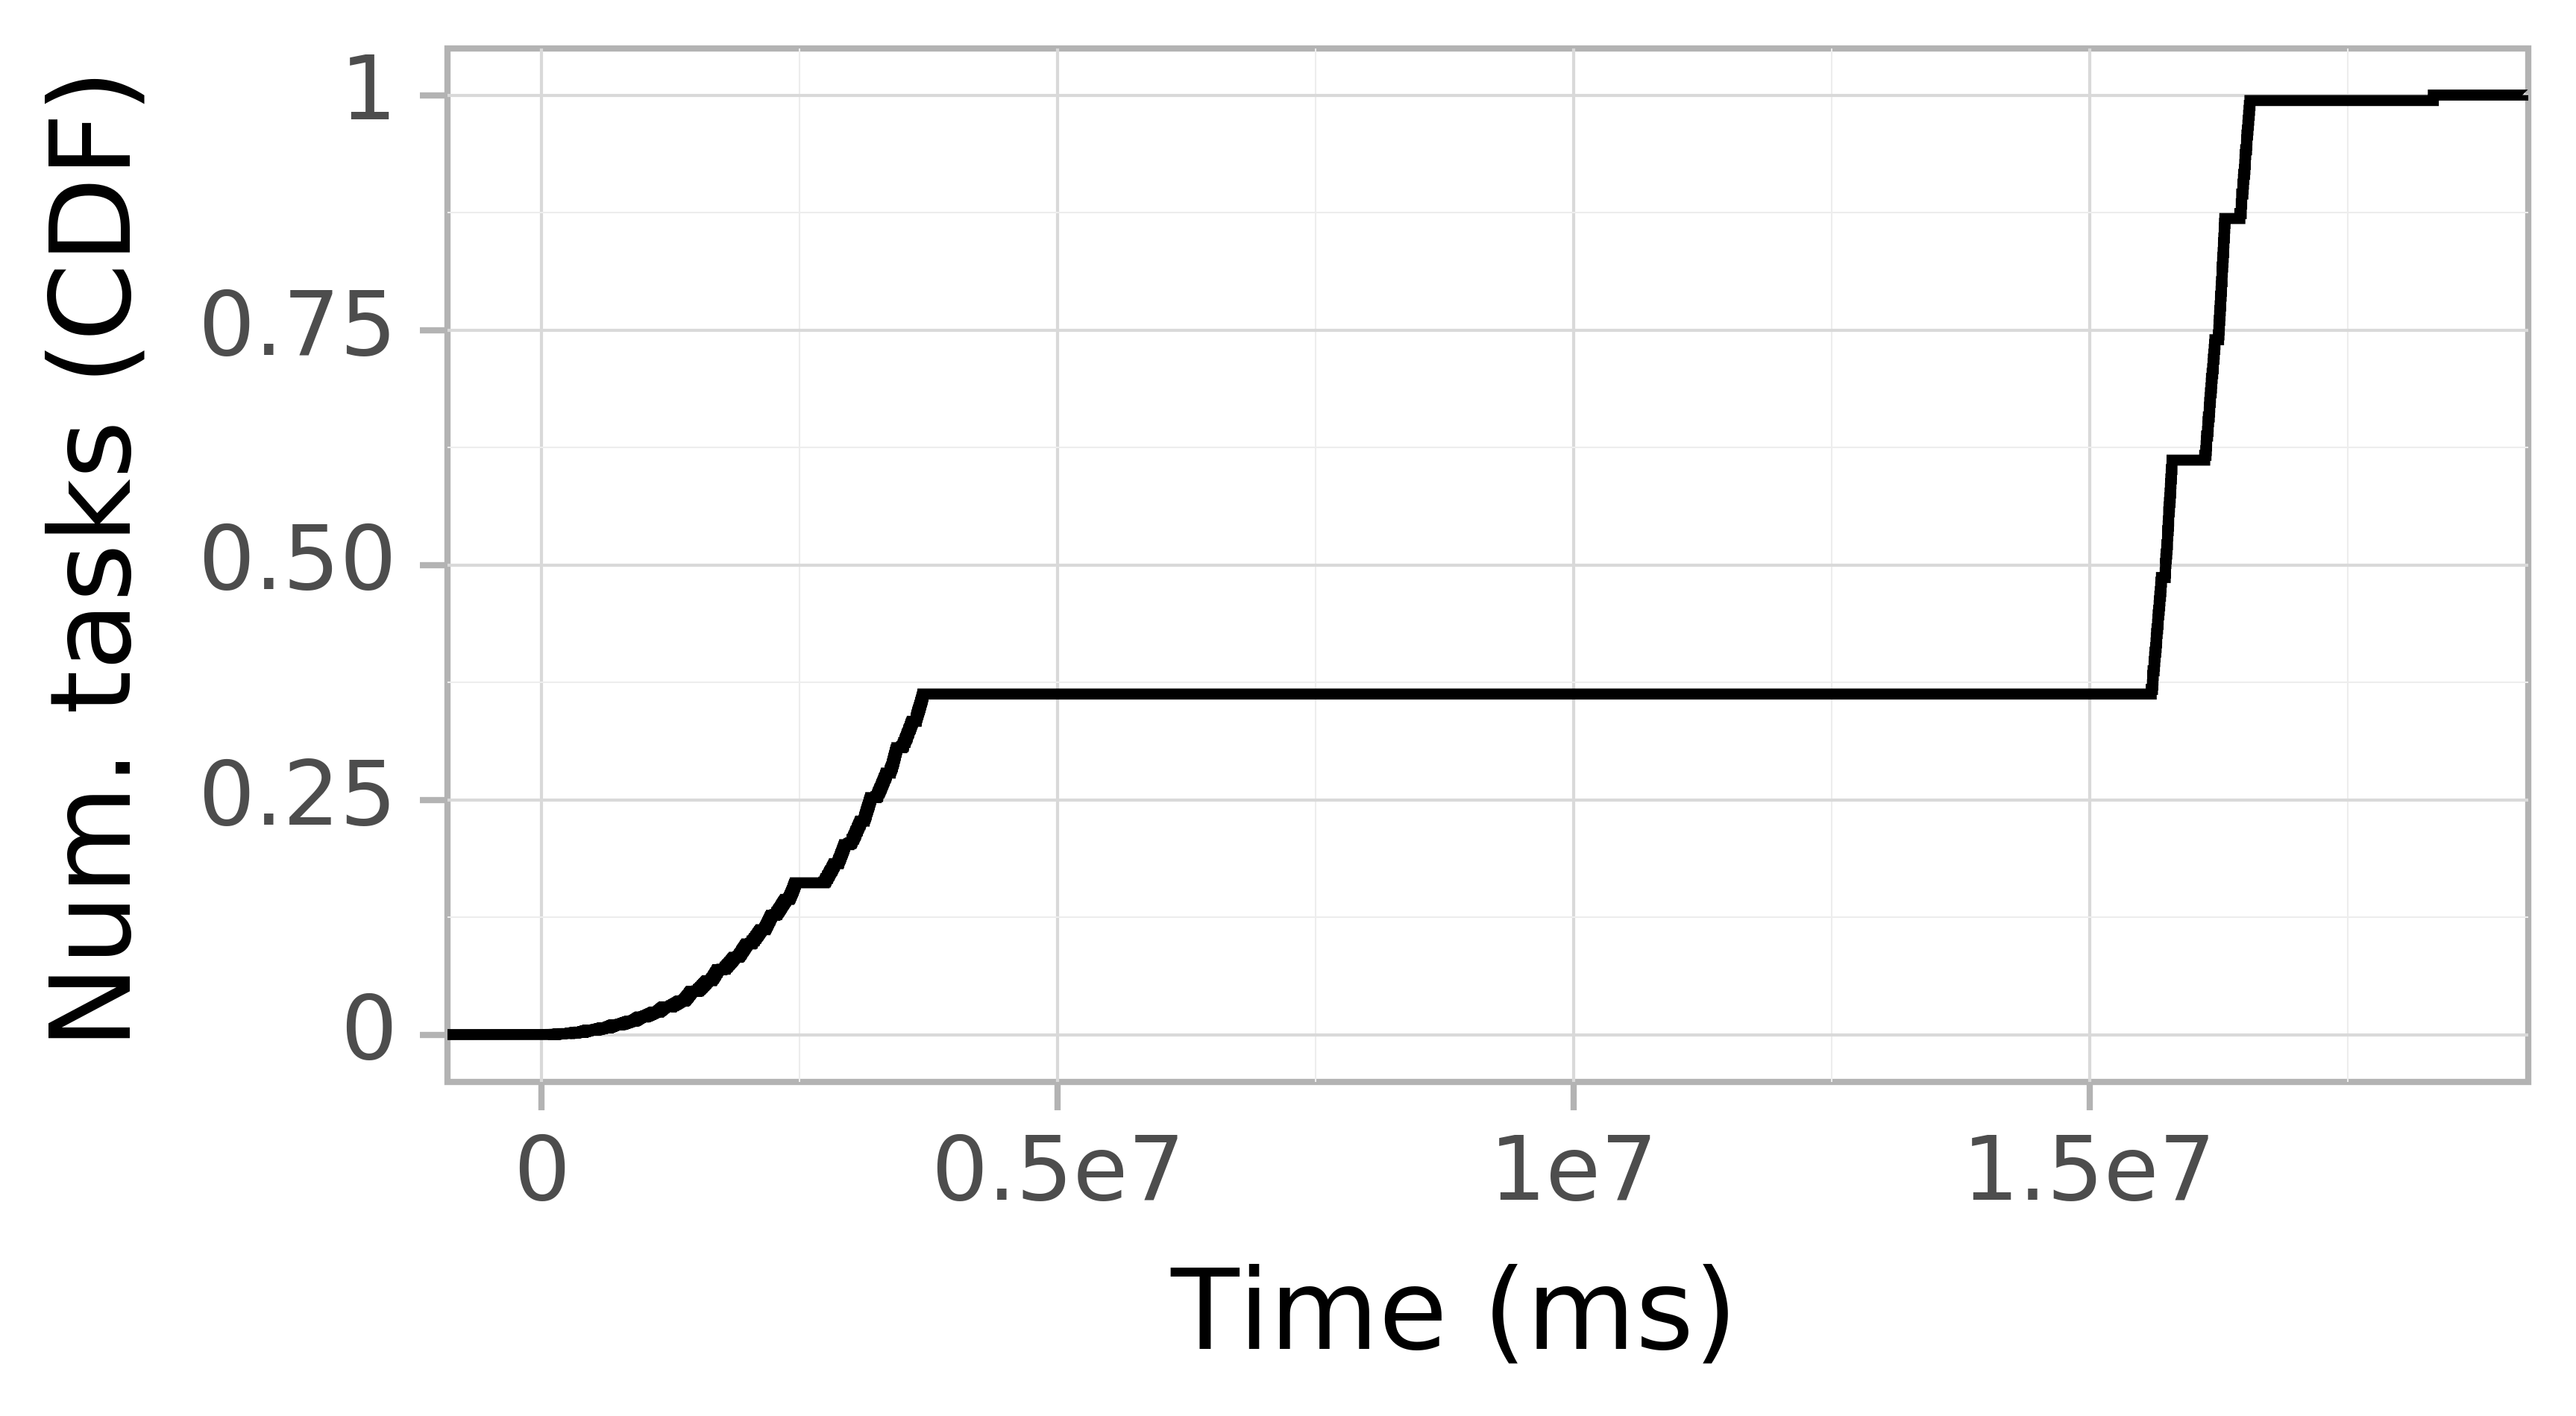 Task arrival CDF graph for the askalon-new_ee21 trace.